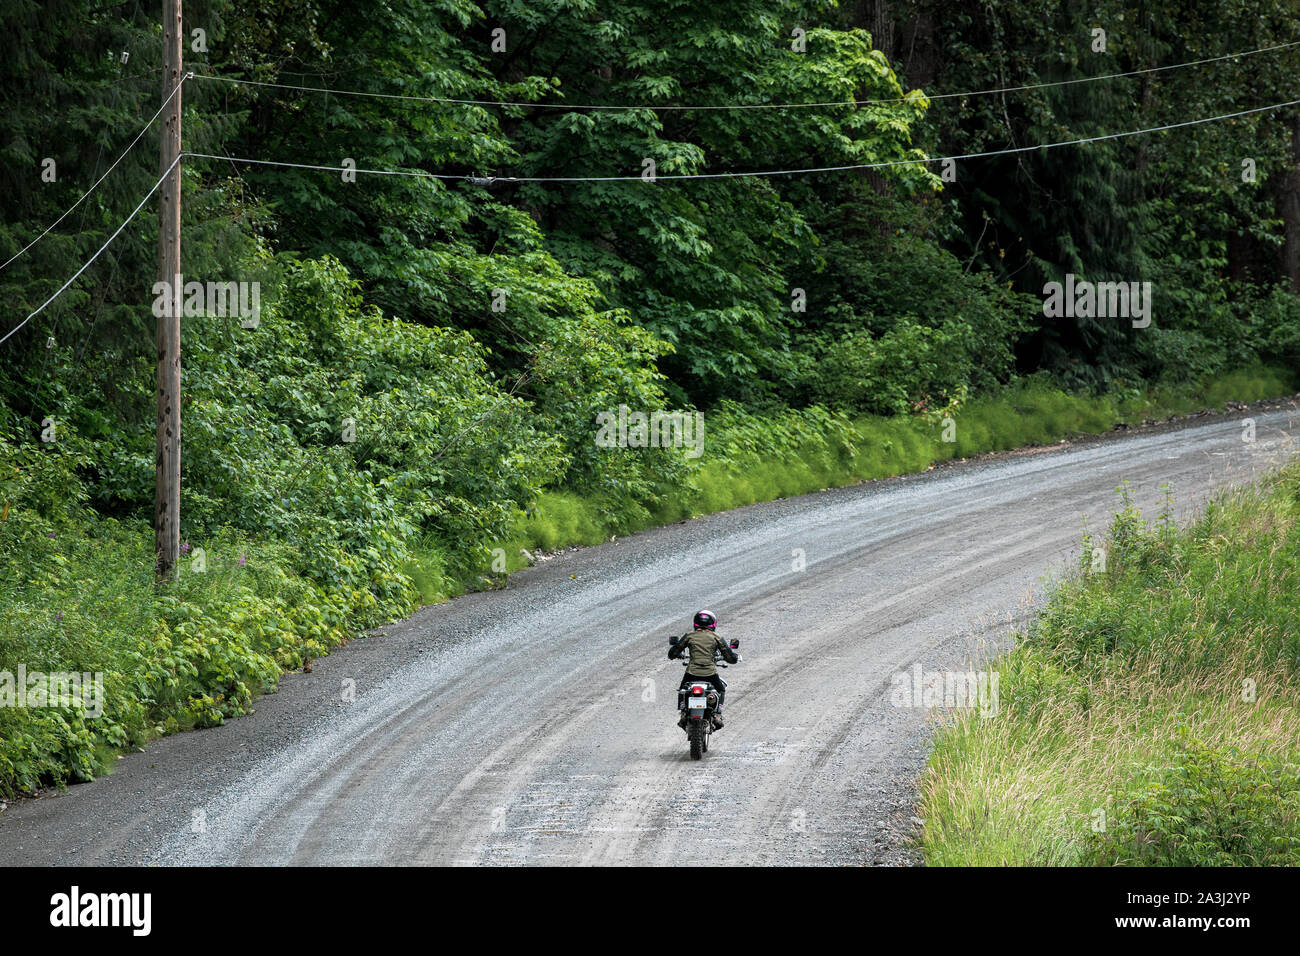 A women rides her motorcycle on a gravel road in Canada. Stock Photo